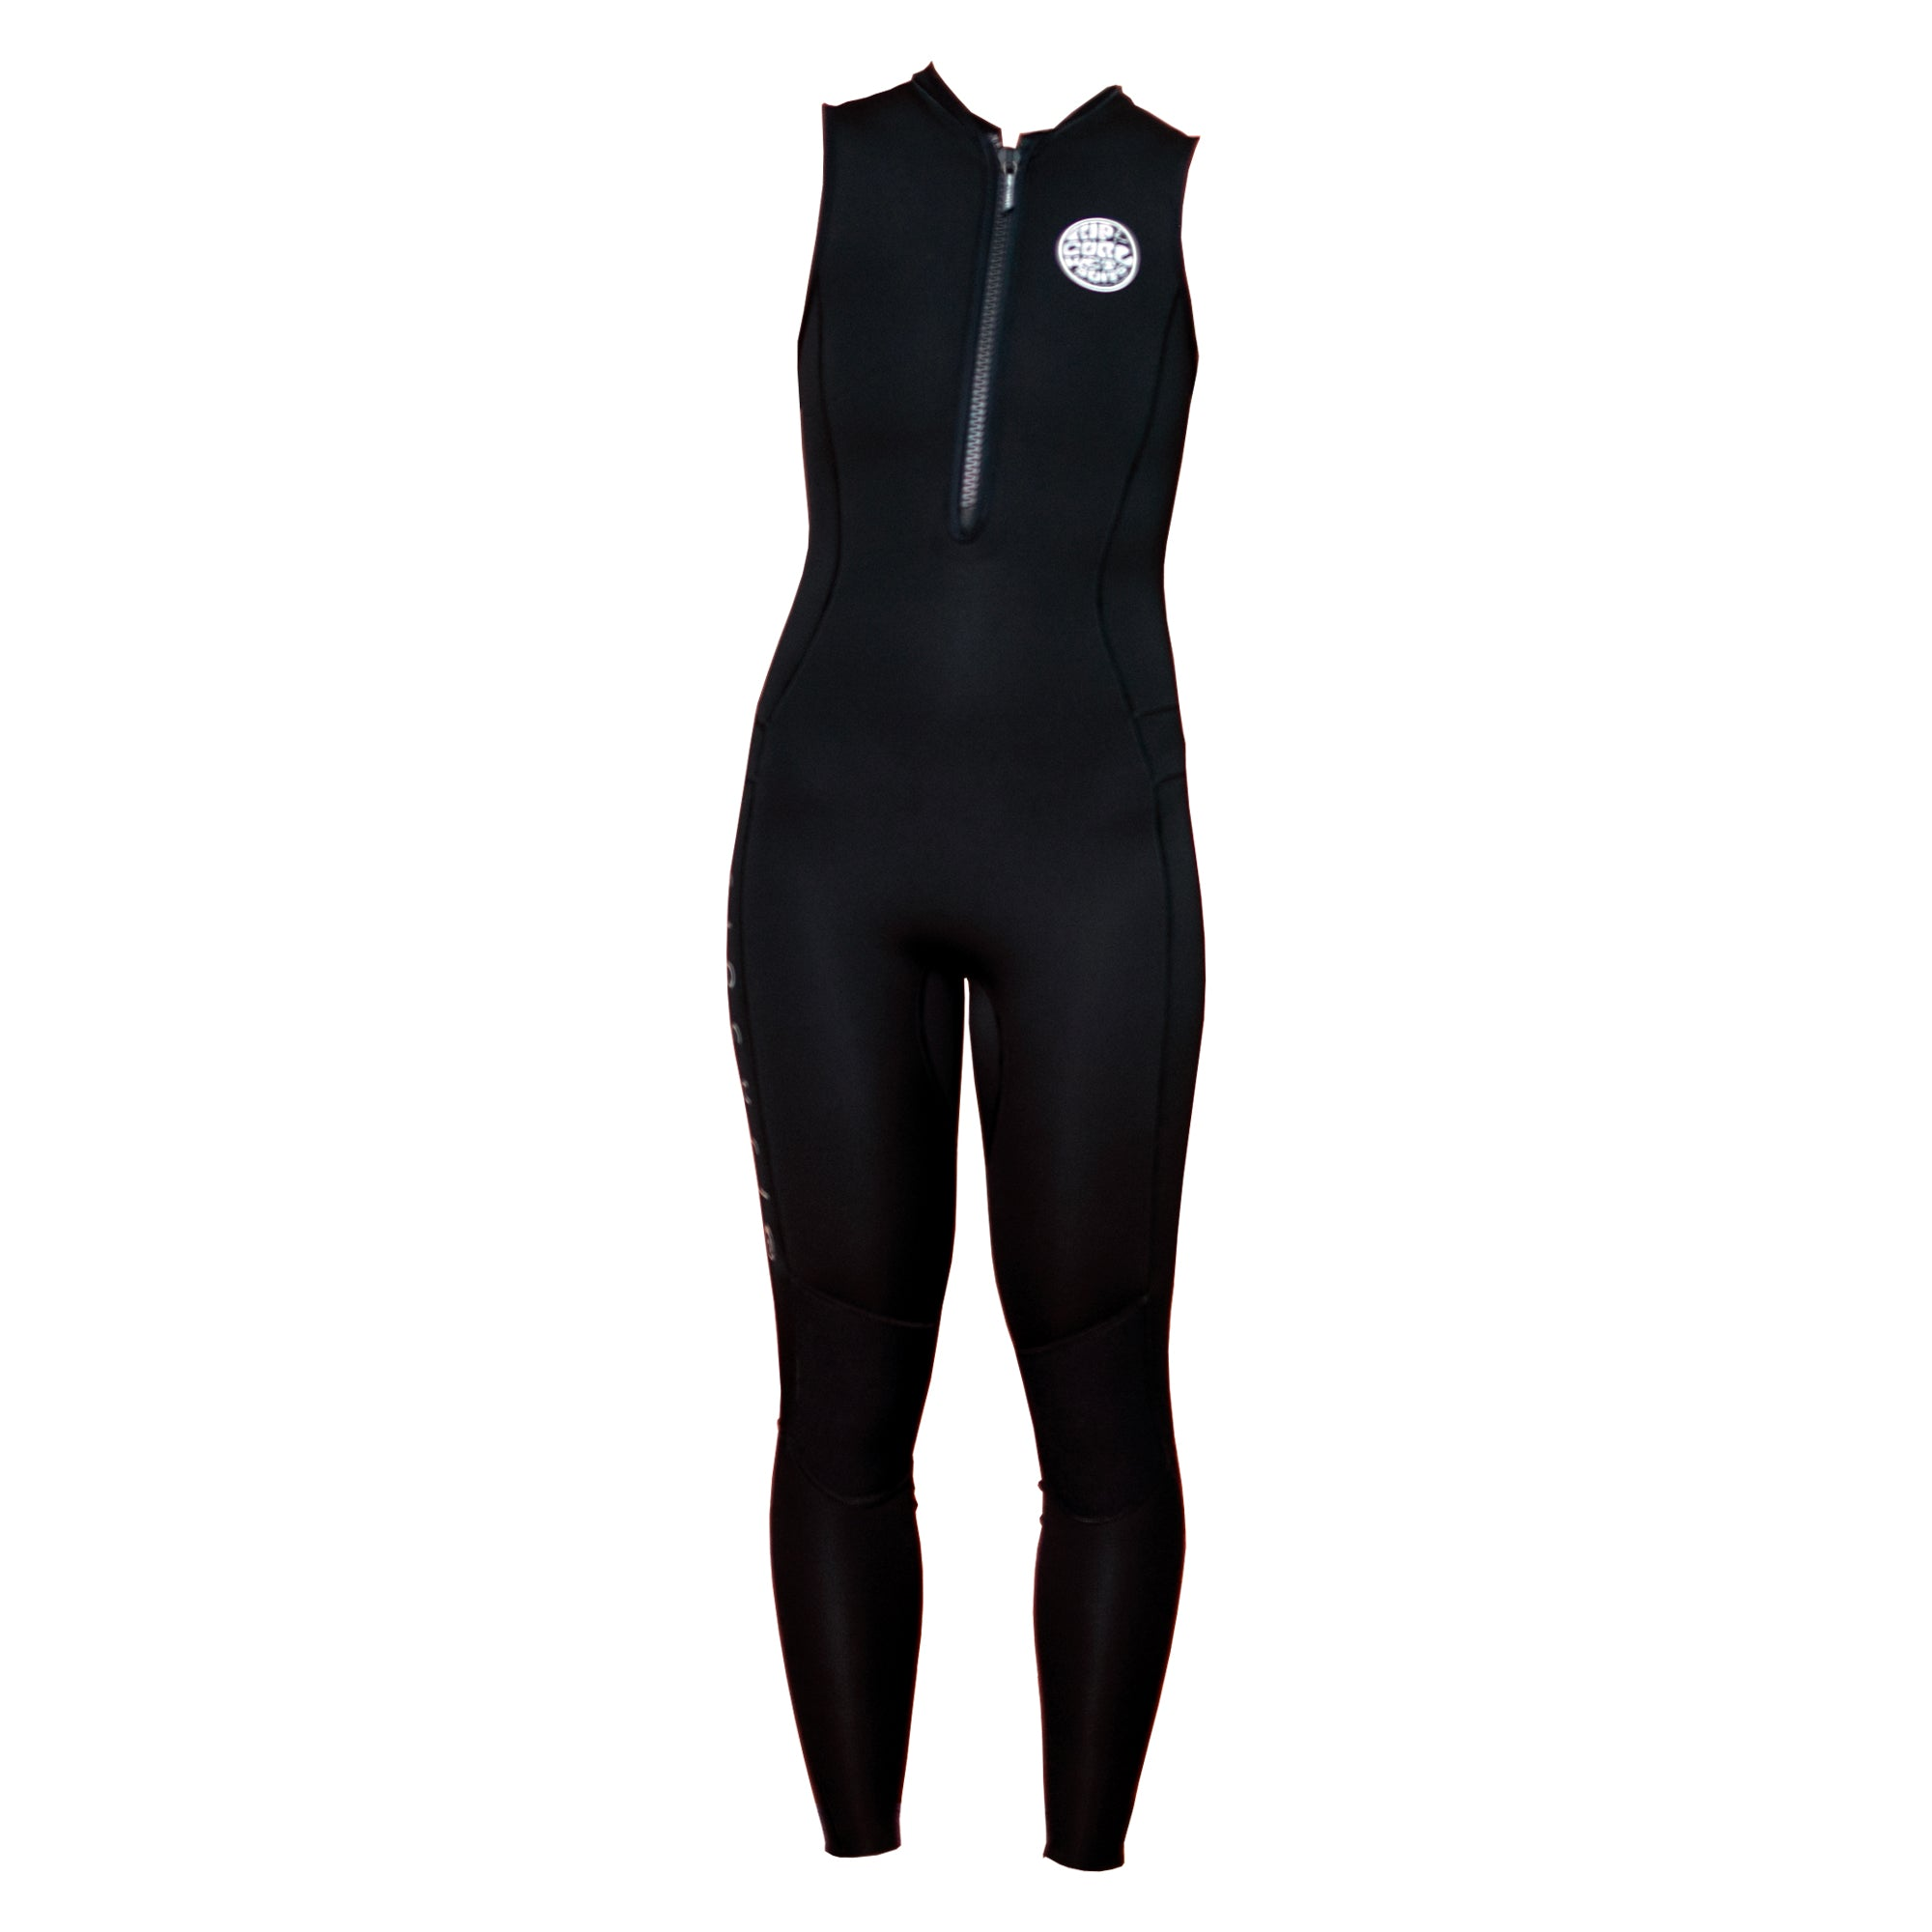 Rip Curl G-Bomb 1.5mm Women's Long Jane Wetsuit